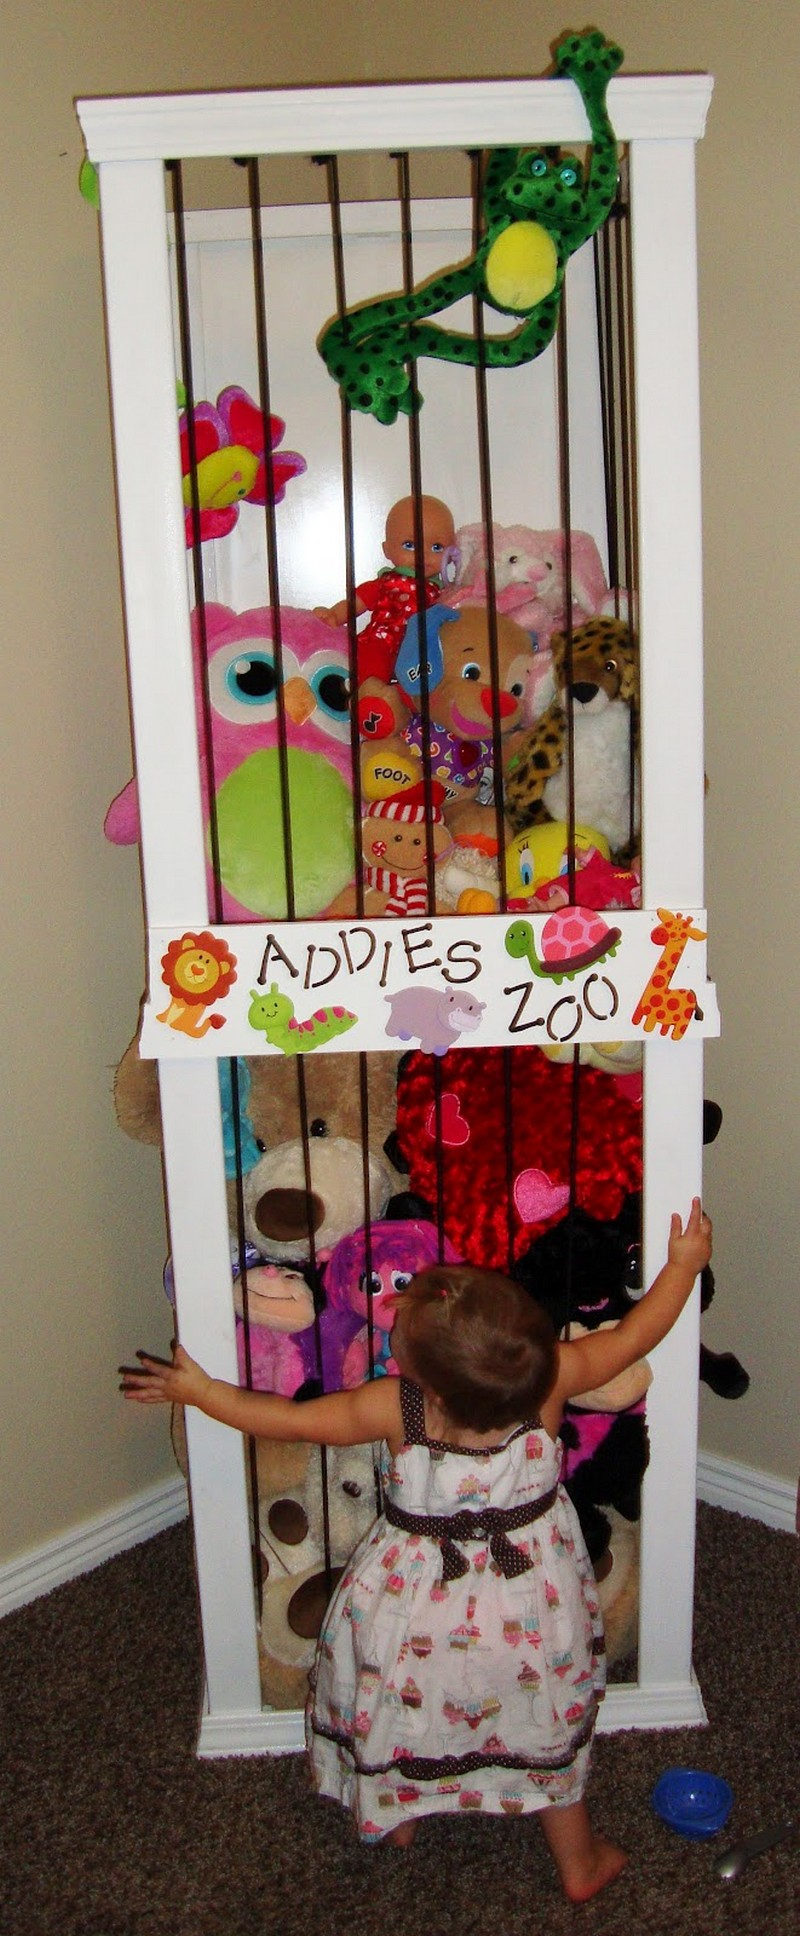 Diy stuffed animal zoo the owner builder network diy stuffed animal zoo solutioingenieria Image collections